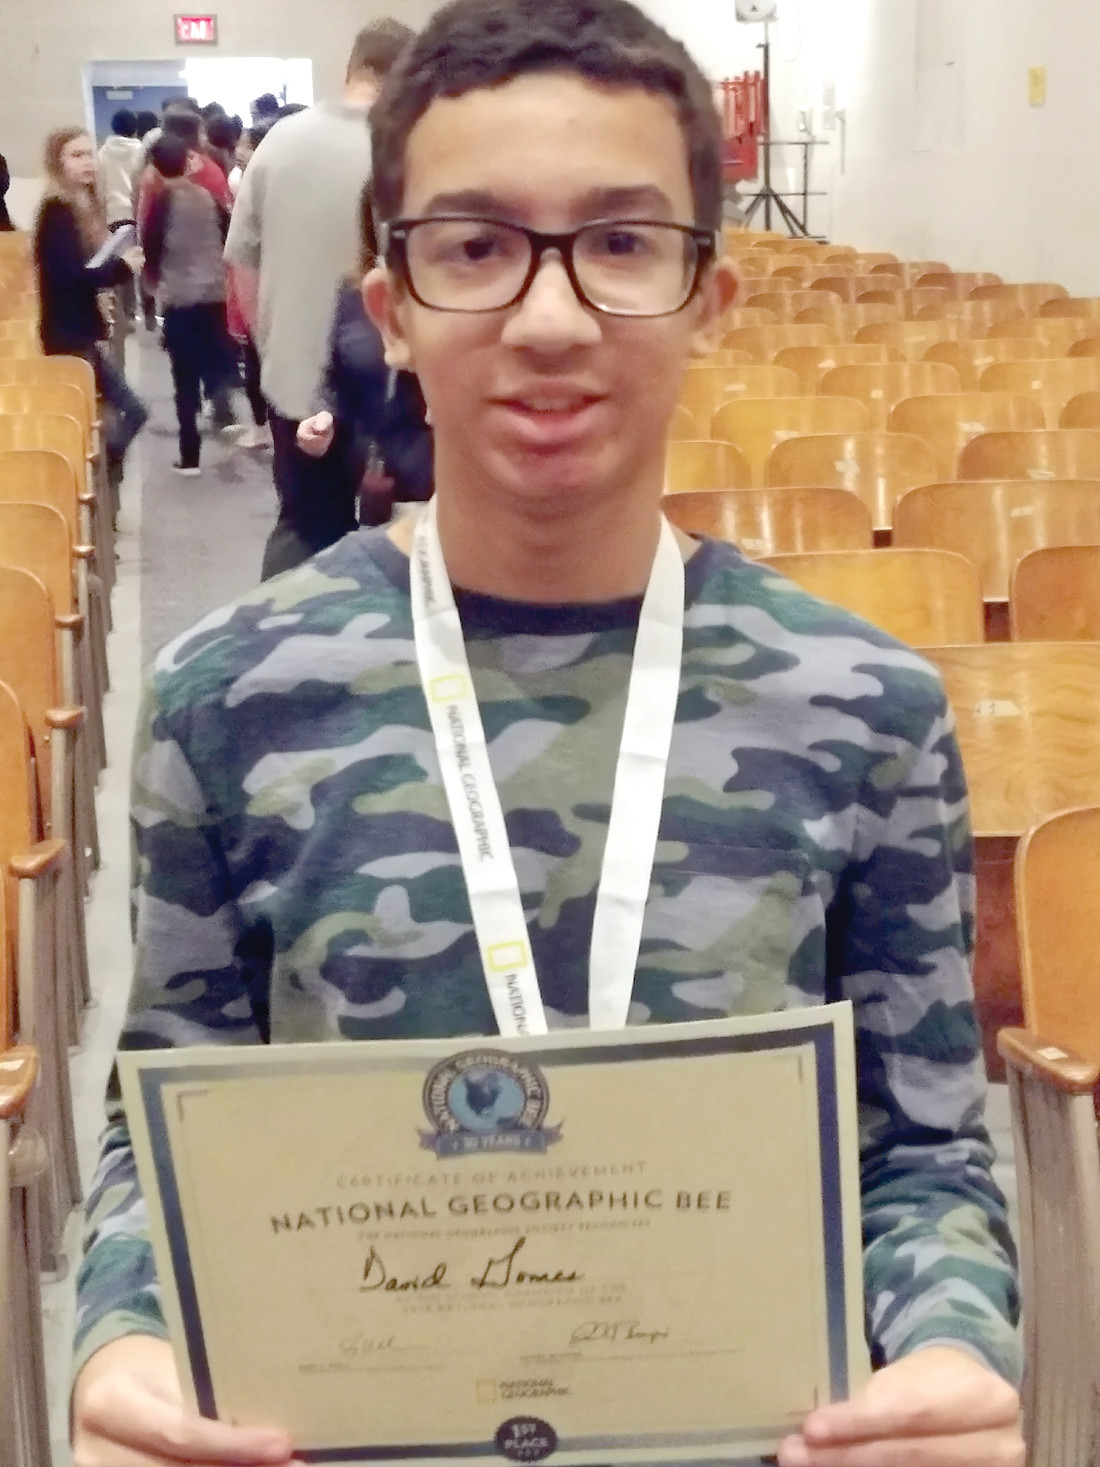 AND THE CHAMPION IS: Seventh-grader David Gomes was named the school's first-place winner in this year's National Geographic Bee, and will go on to the state level competition, representing Park View Middle School.